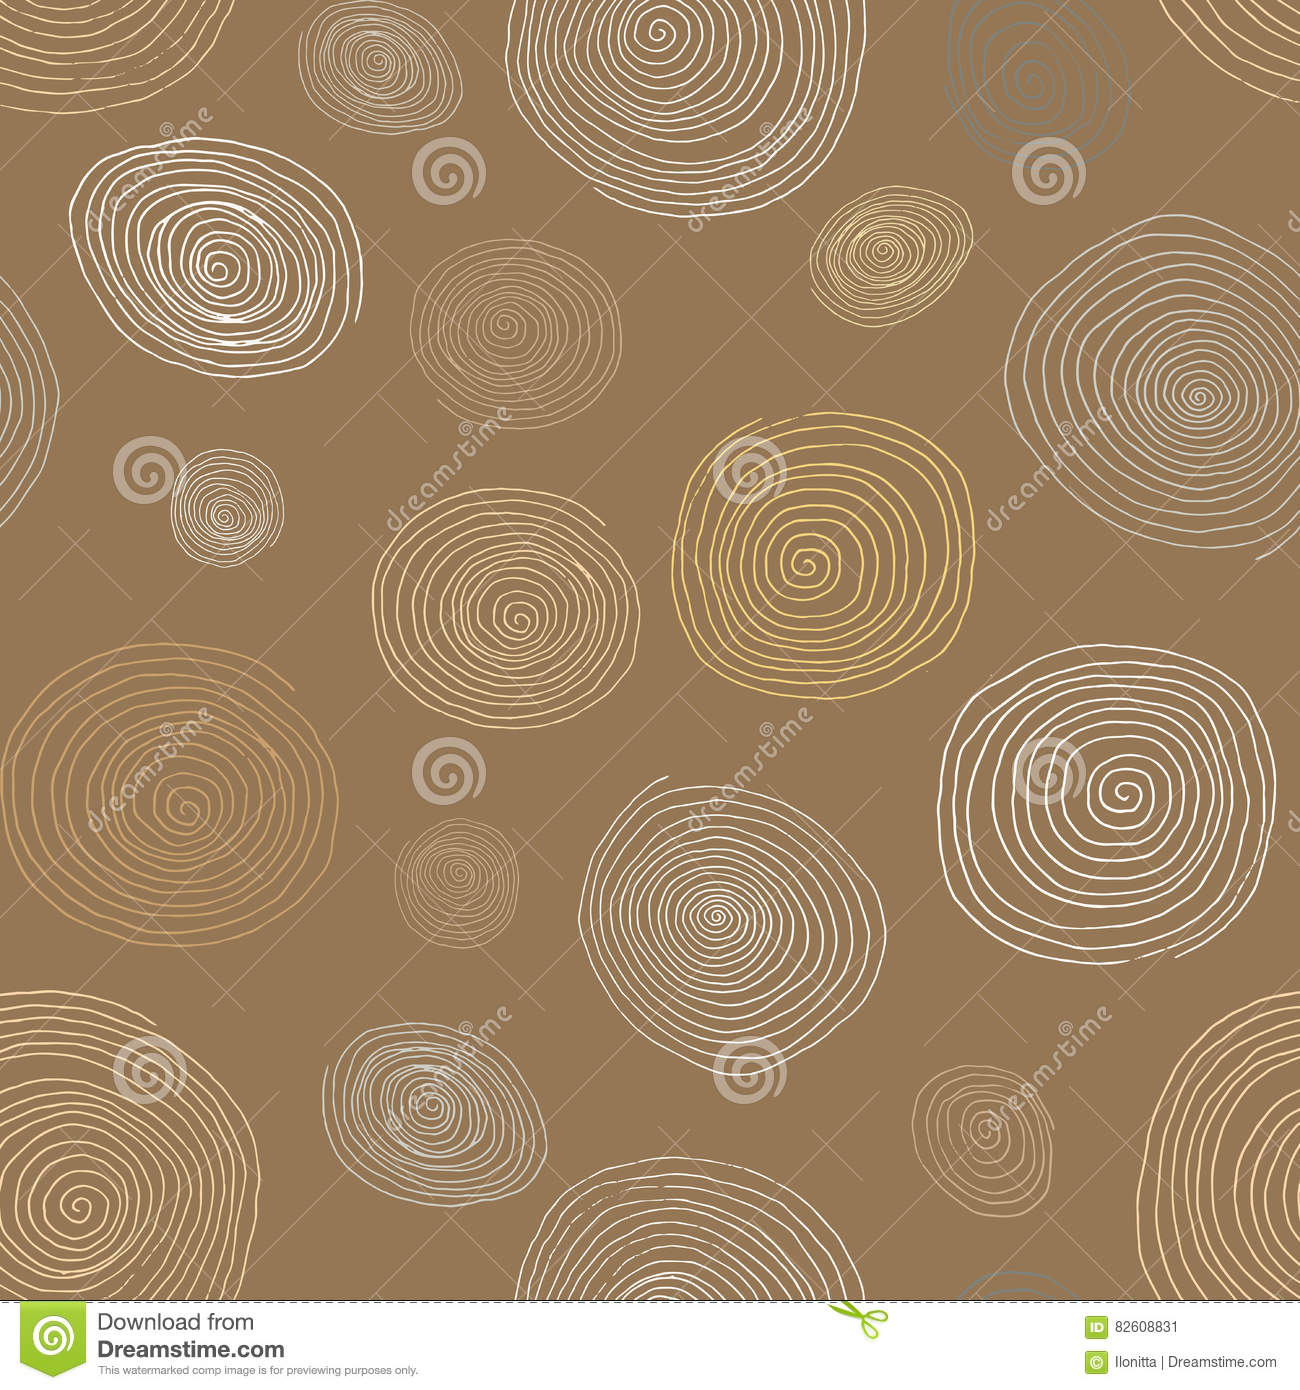 Stylized wooden spirals hand drawn seamless pattern for interior design wallpapers